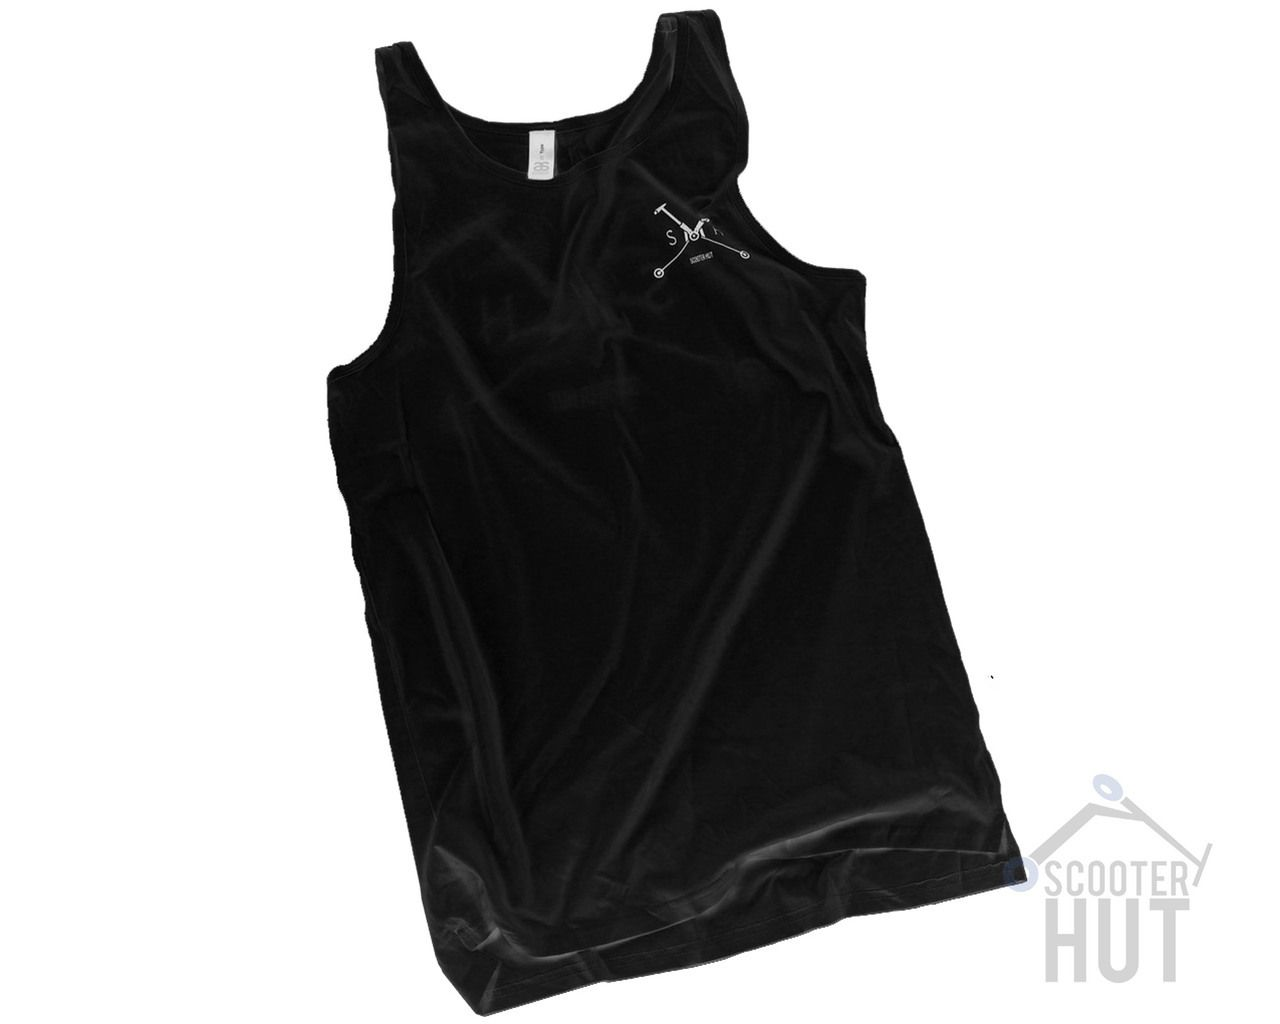 Lucky scooters deep roots t shirt airborne action sports - Scooter Hut Singlet Boss Black Scooter Hut